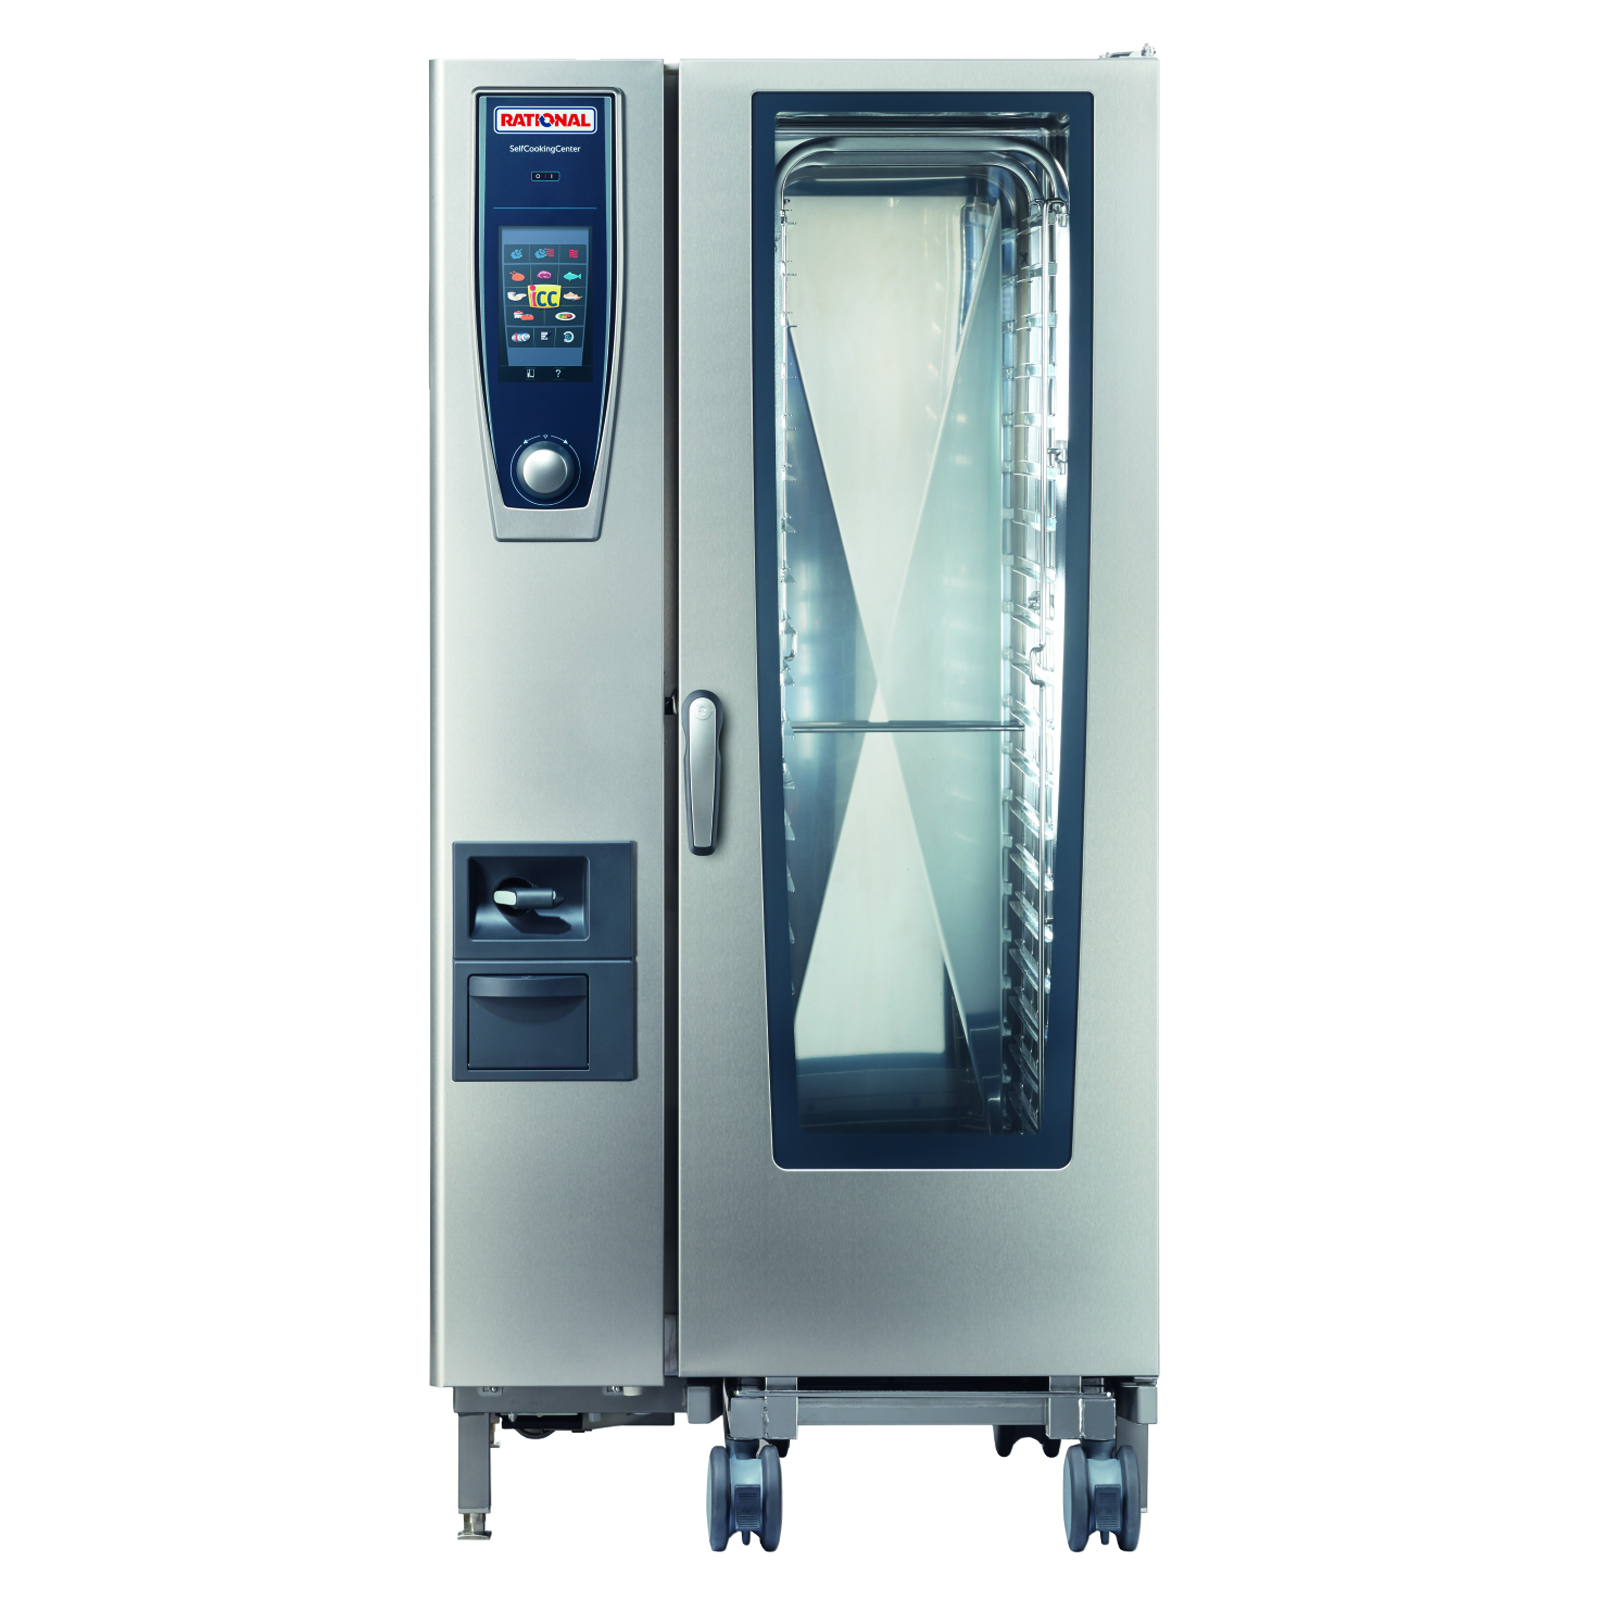 RATIONAL B218206.27D combi oven, gas